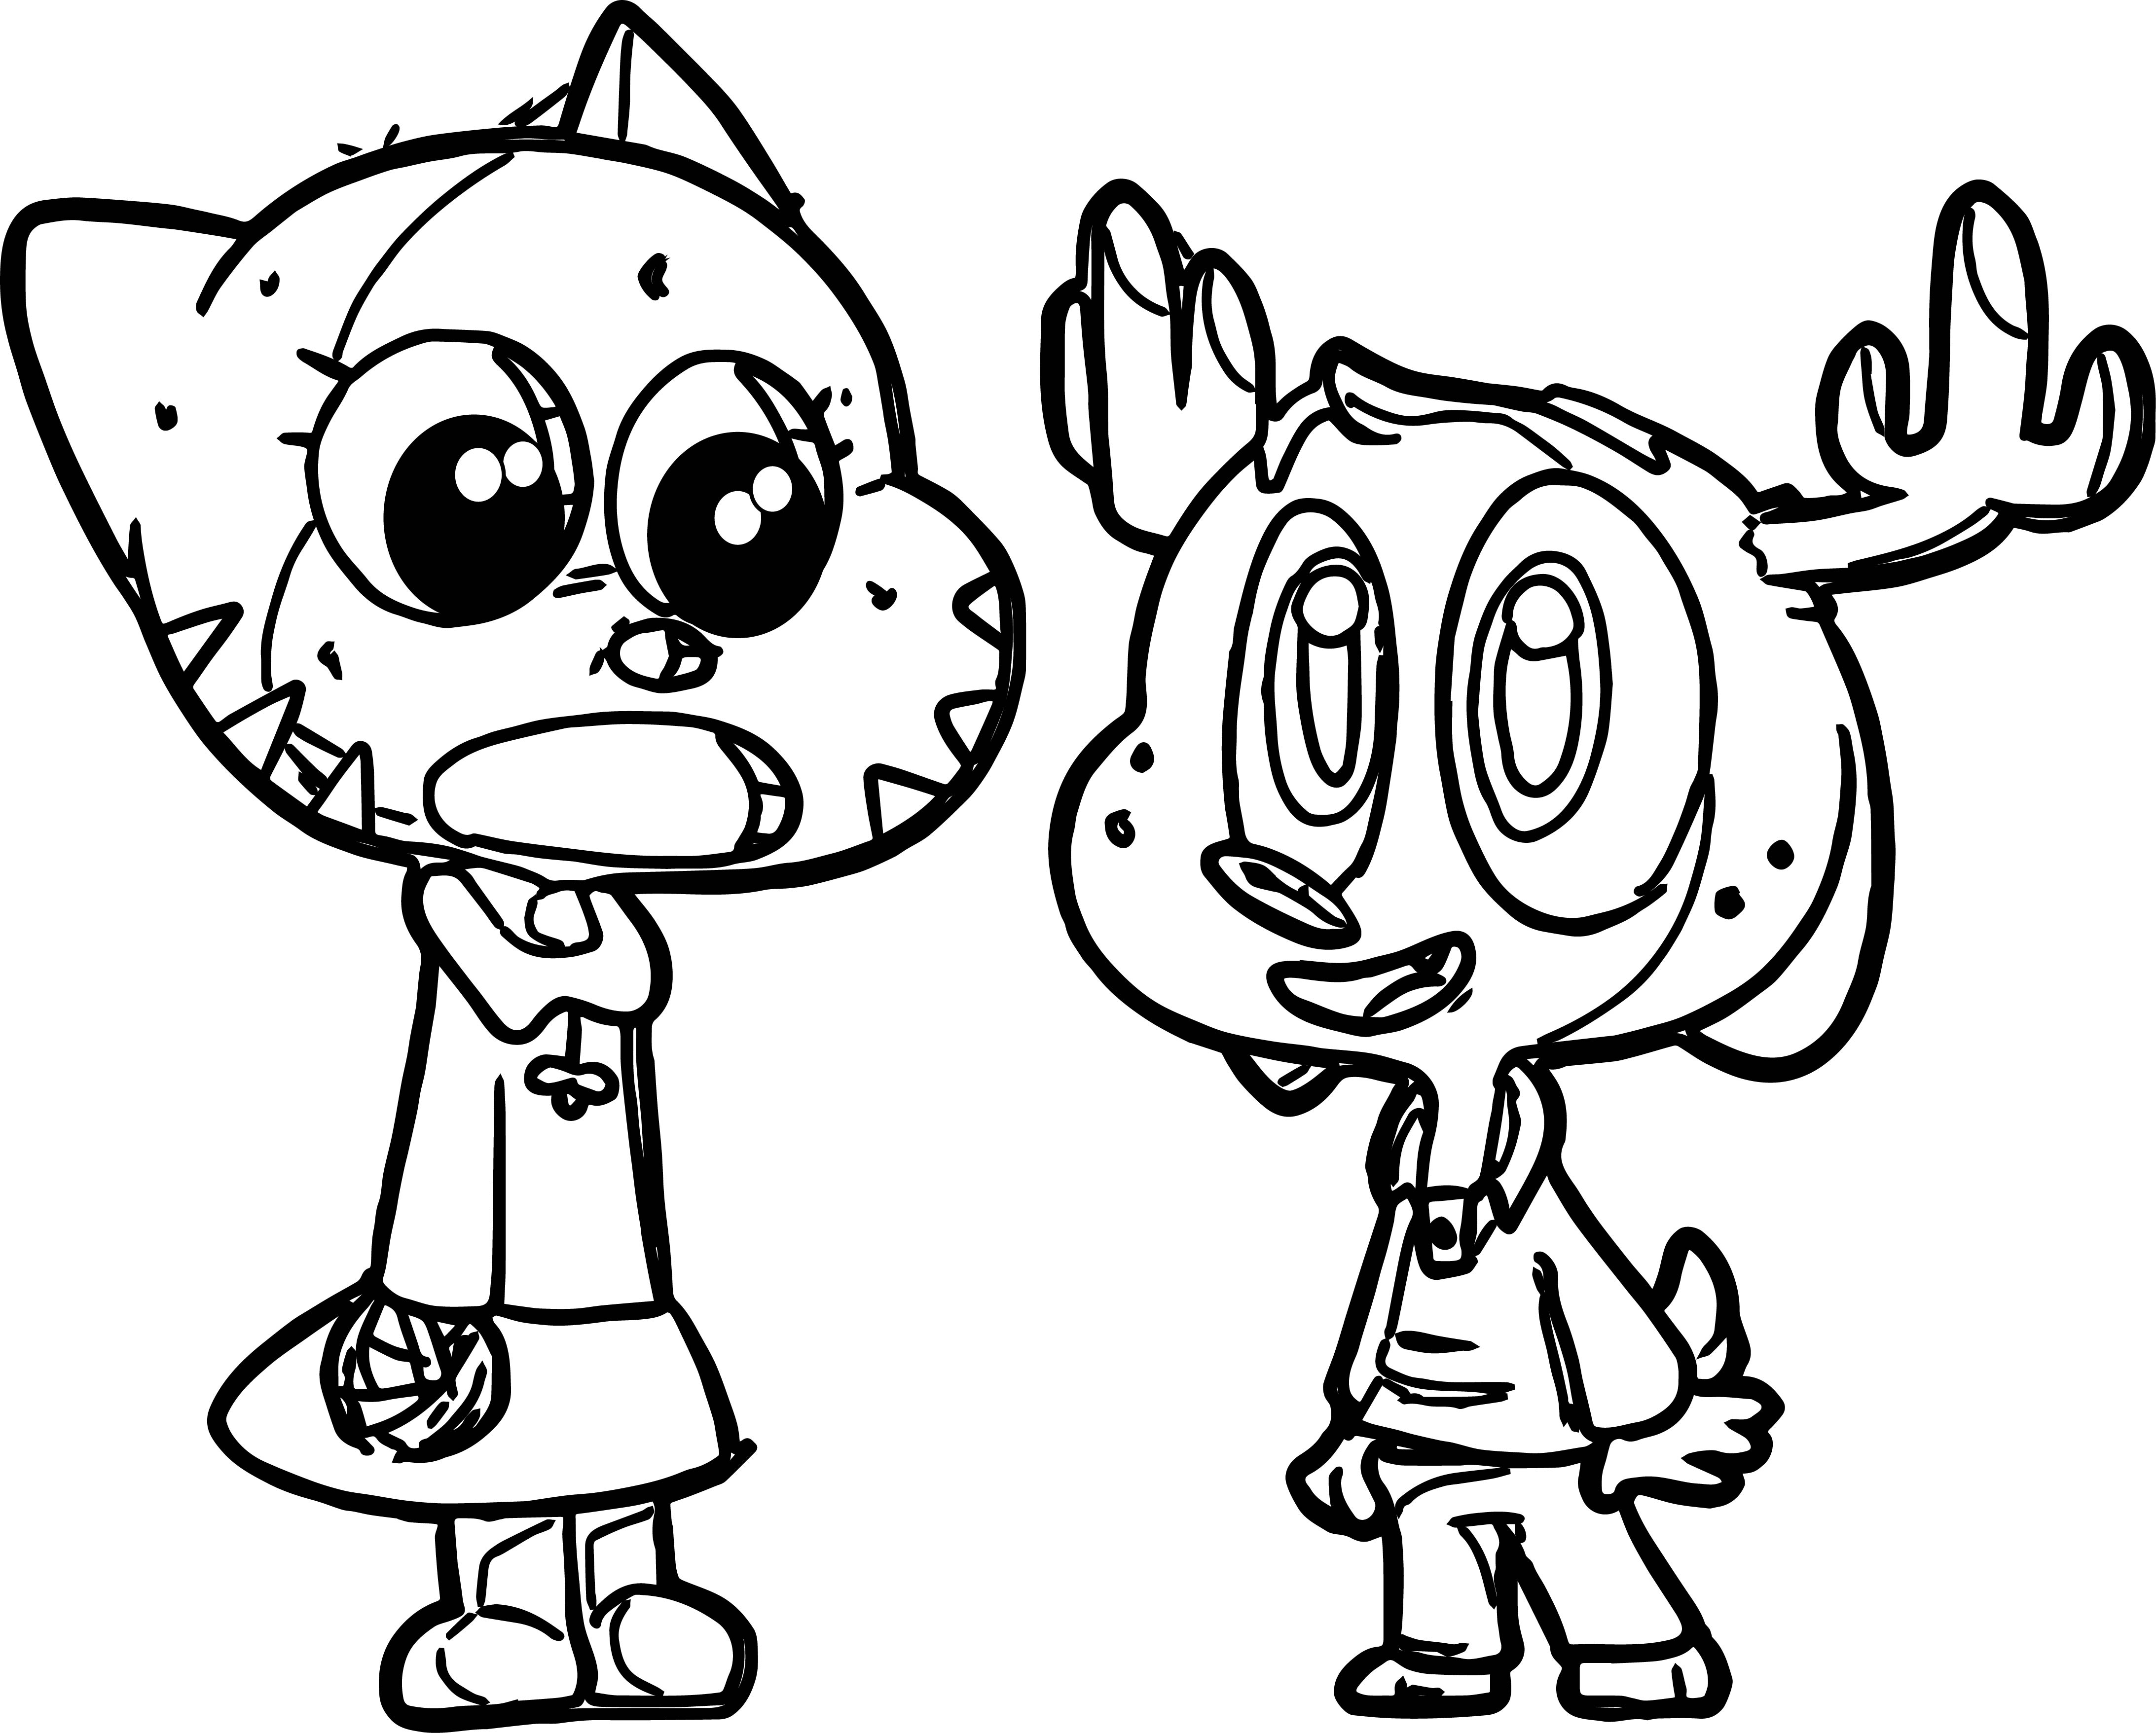 Gumball And Friend Coloring Page